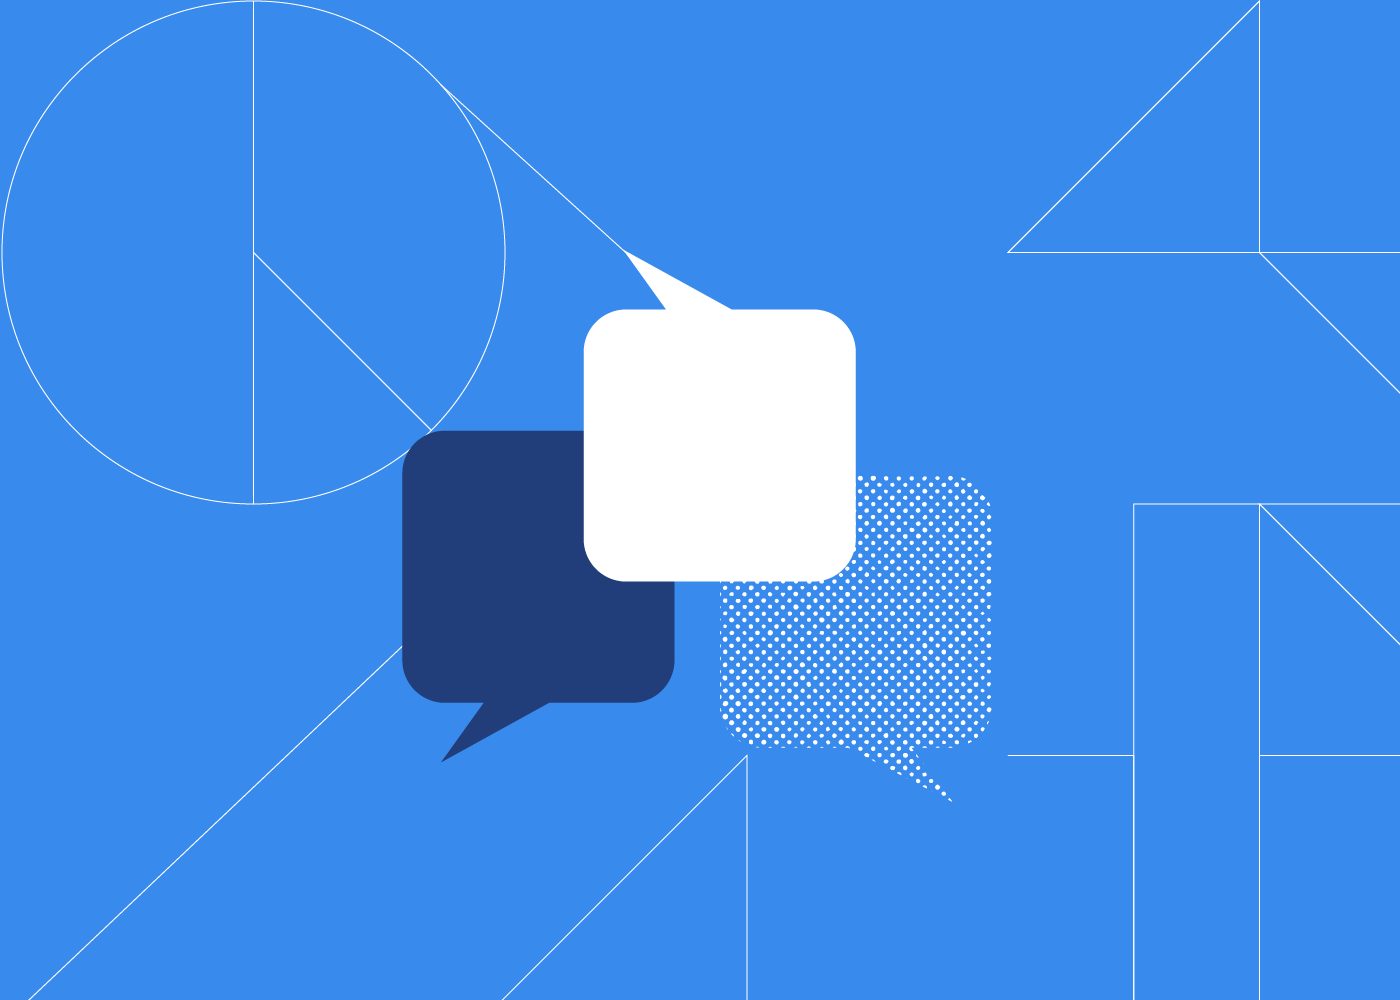 Illustrated chat bubbles